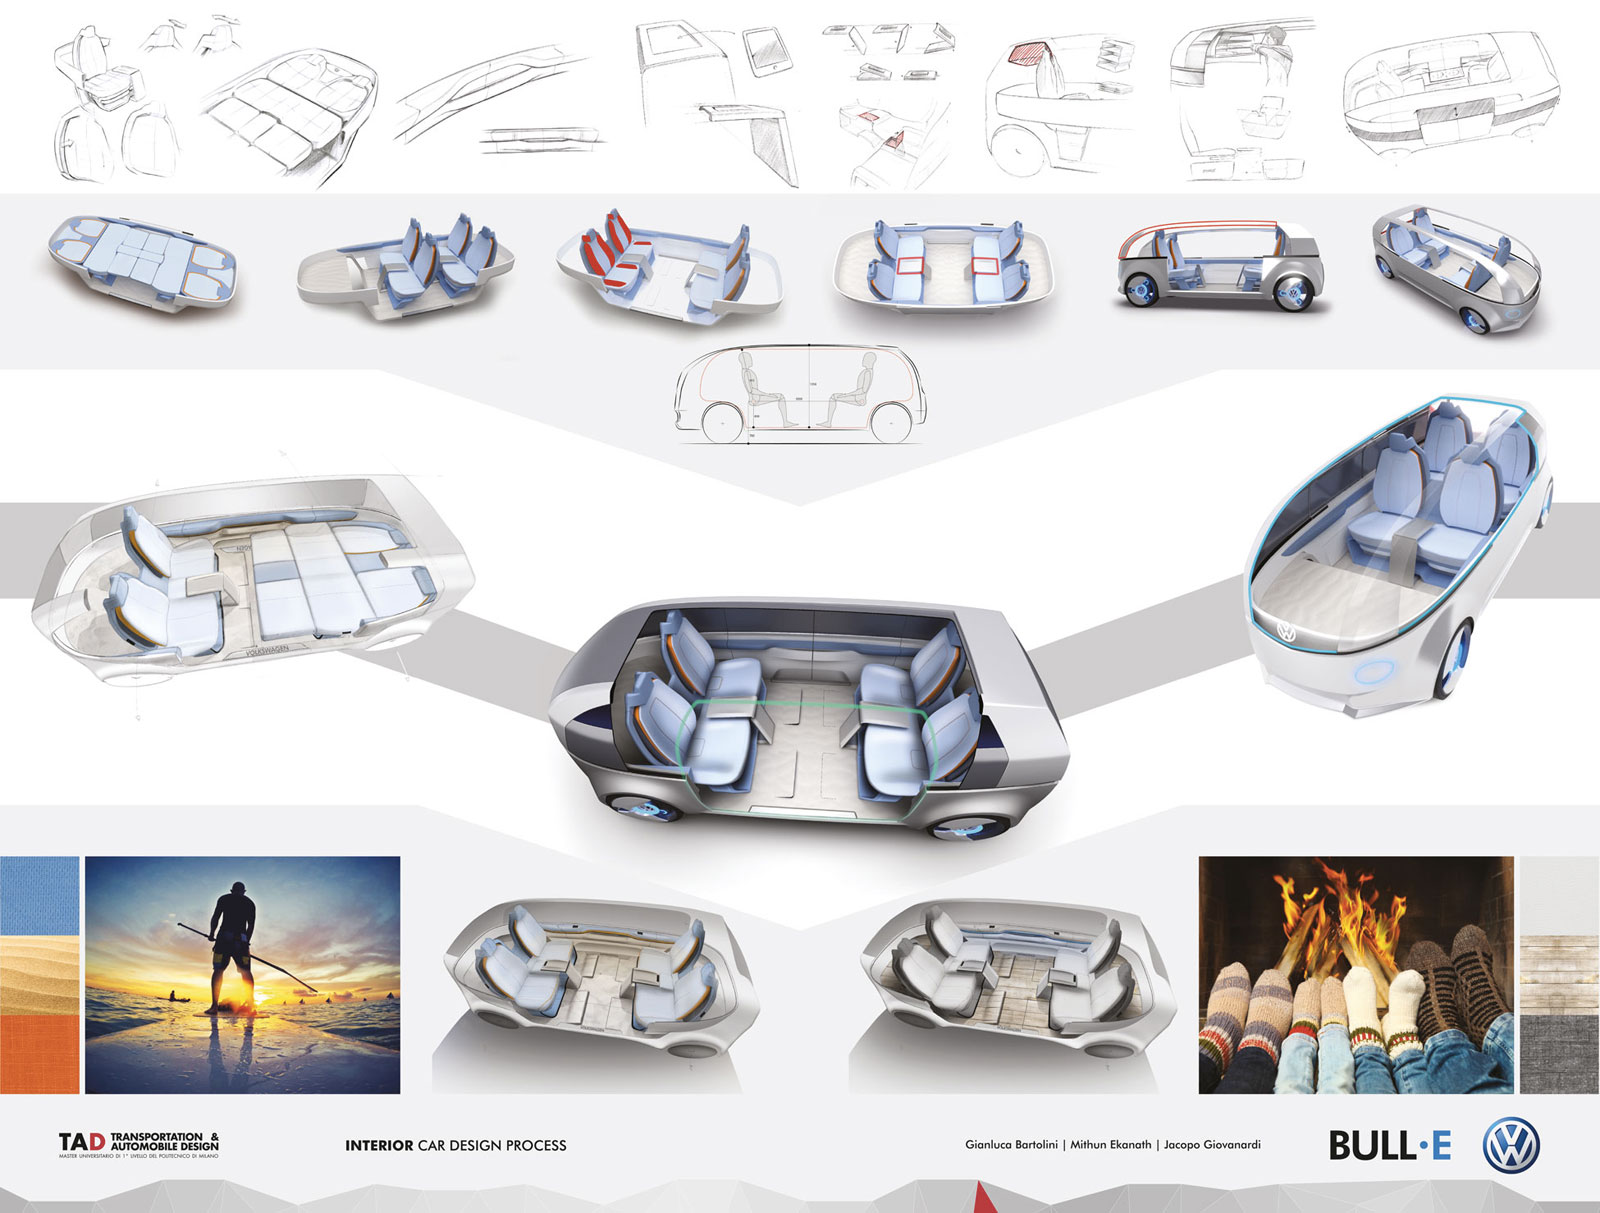 Volkswagen bull e interior design process car body design for Interior design process